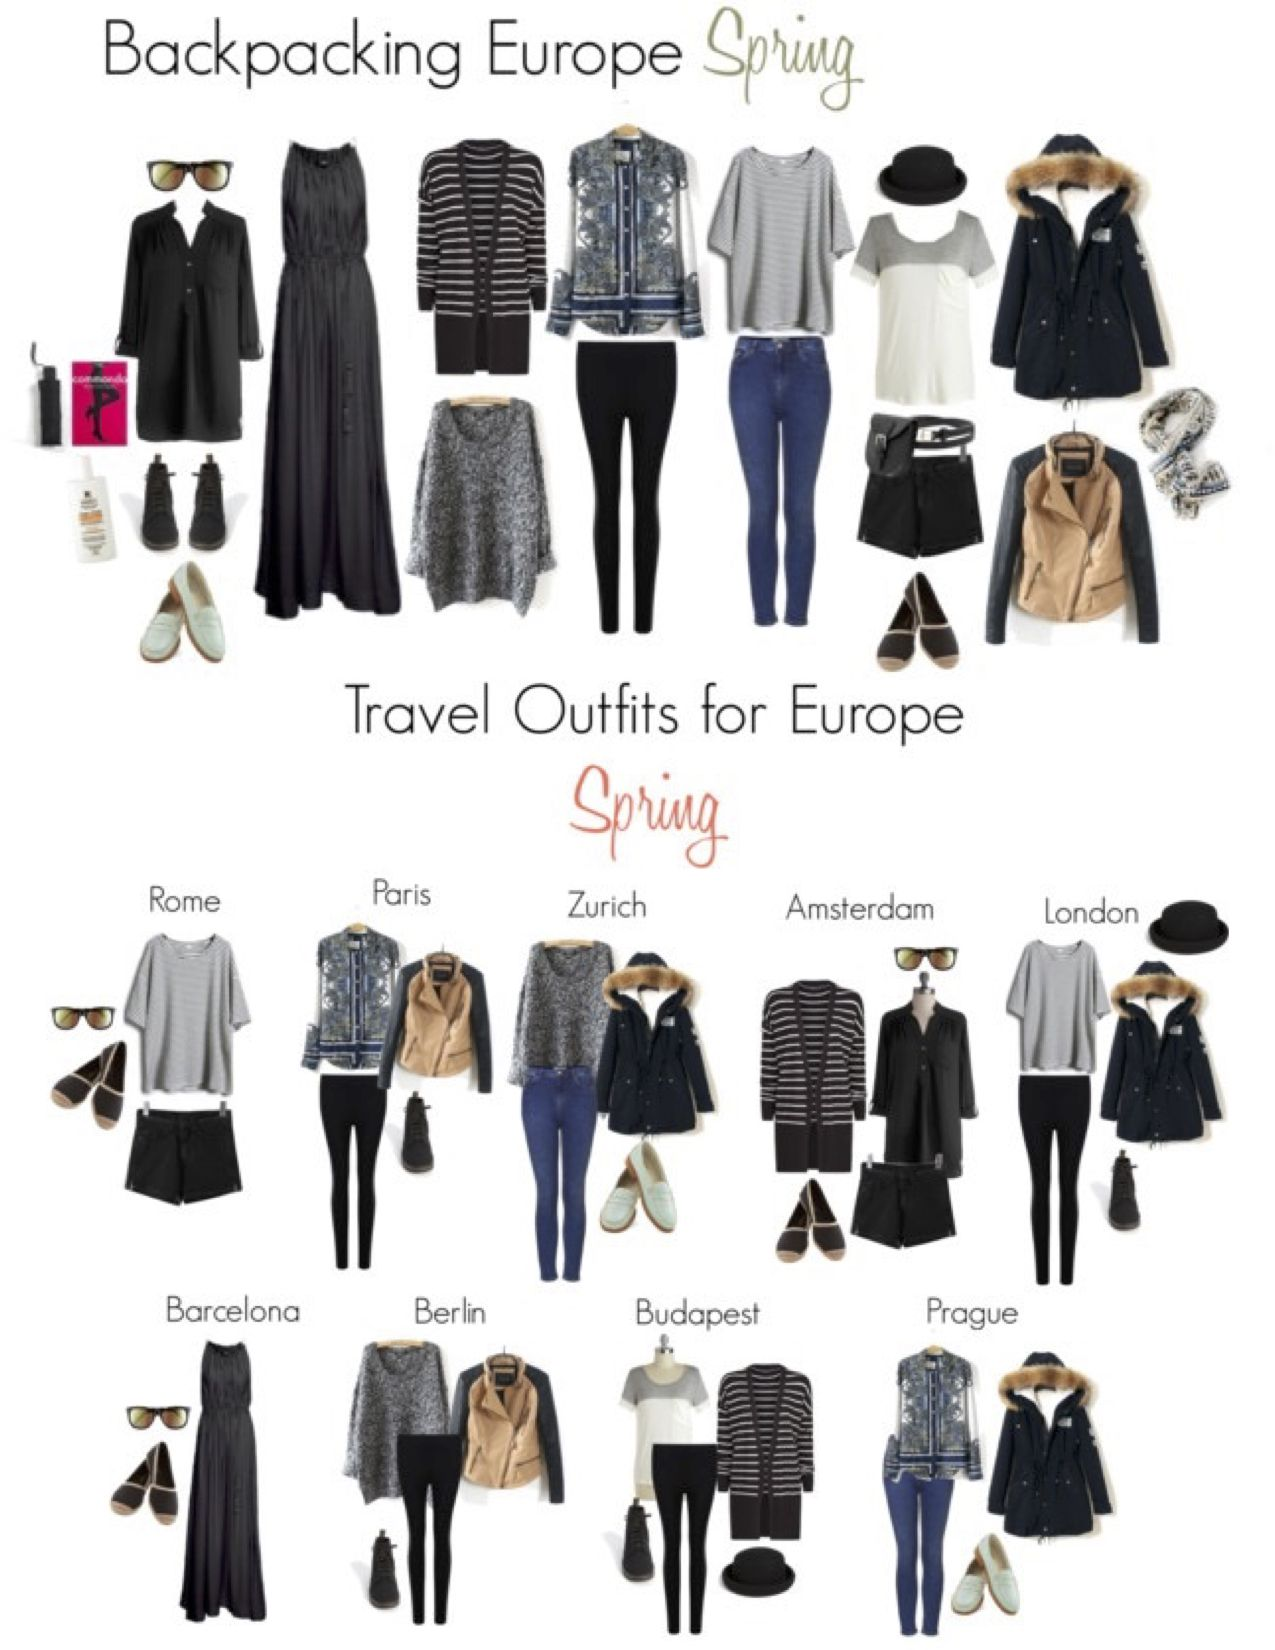 Backpacking In Europe This Spring